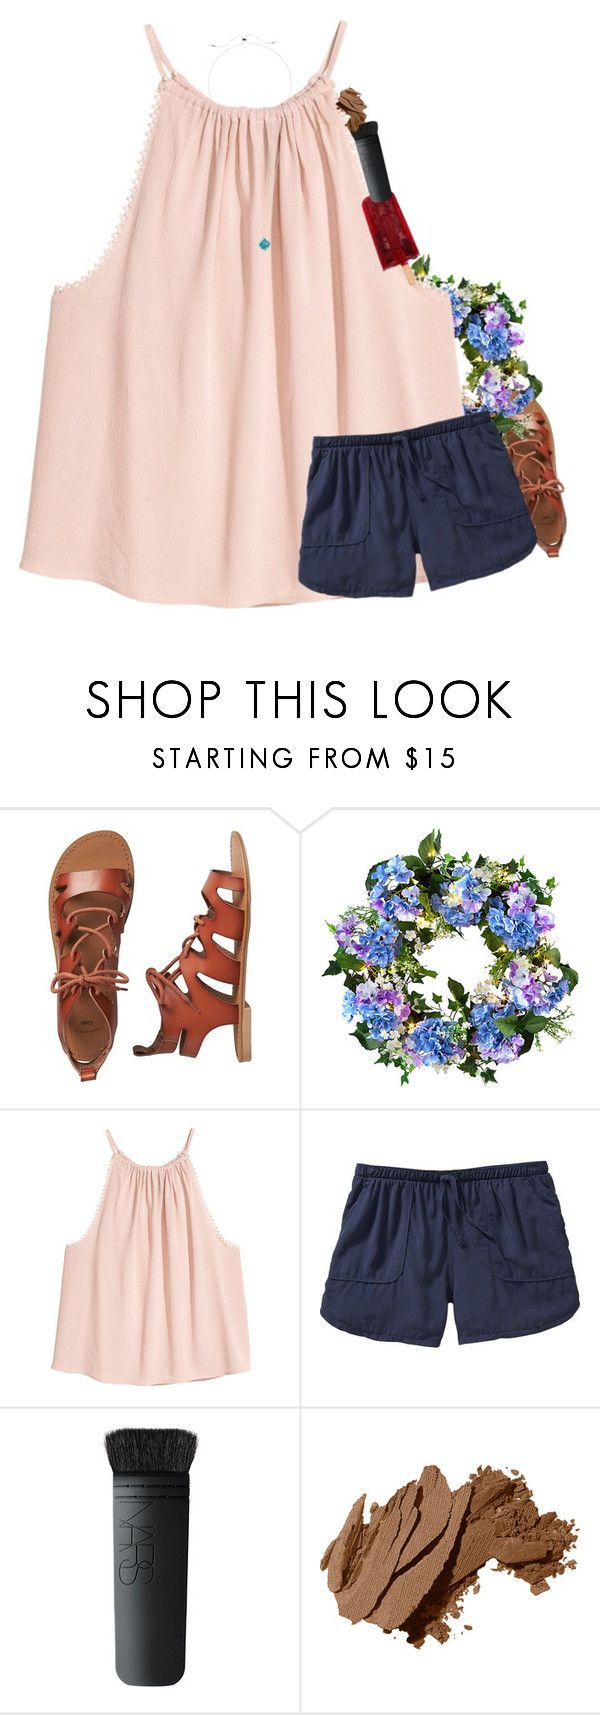 """""""Comment if I can raid"""" by mac-moses ❤ liked on Polyvore featuring Gap, Improvements, Old Navy, NARS Cosmetics, Bobbi Brown Cosmetics and Kendra Scott"""